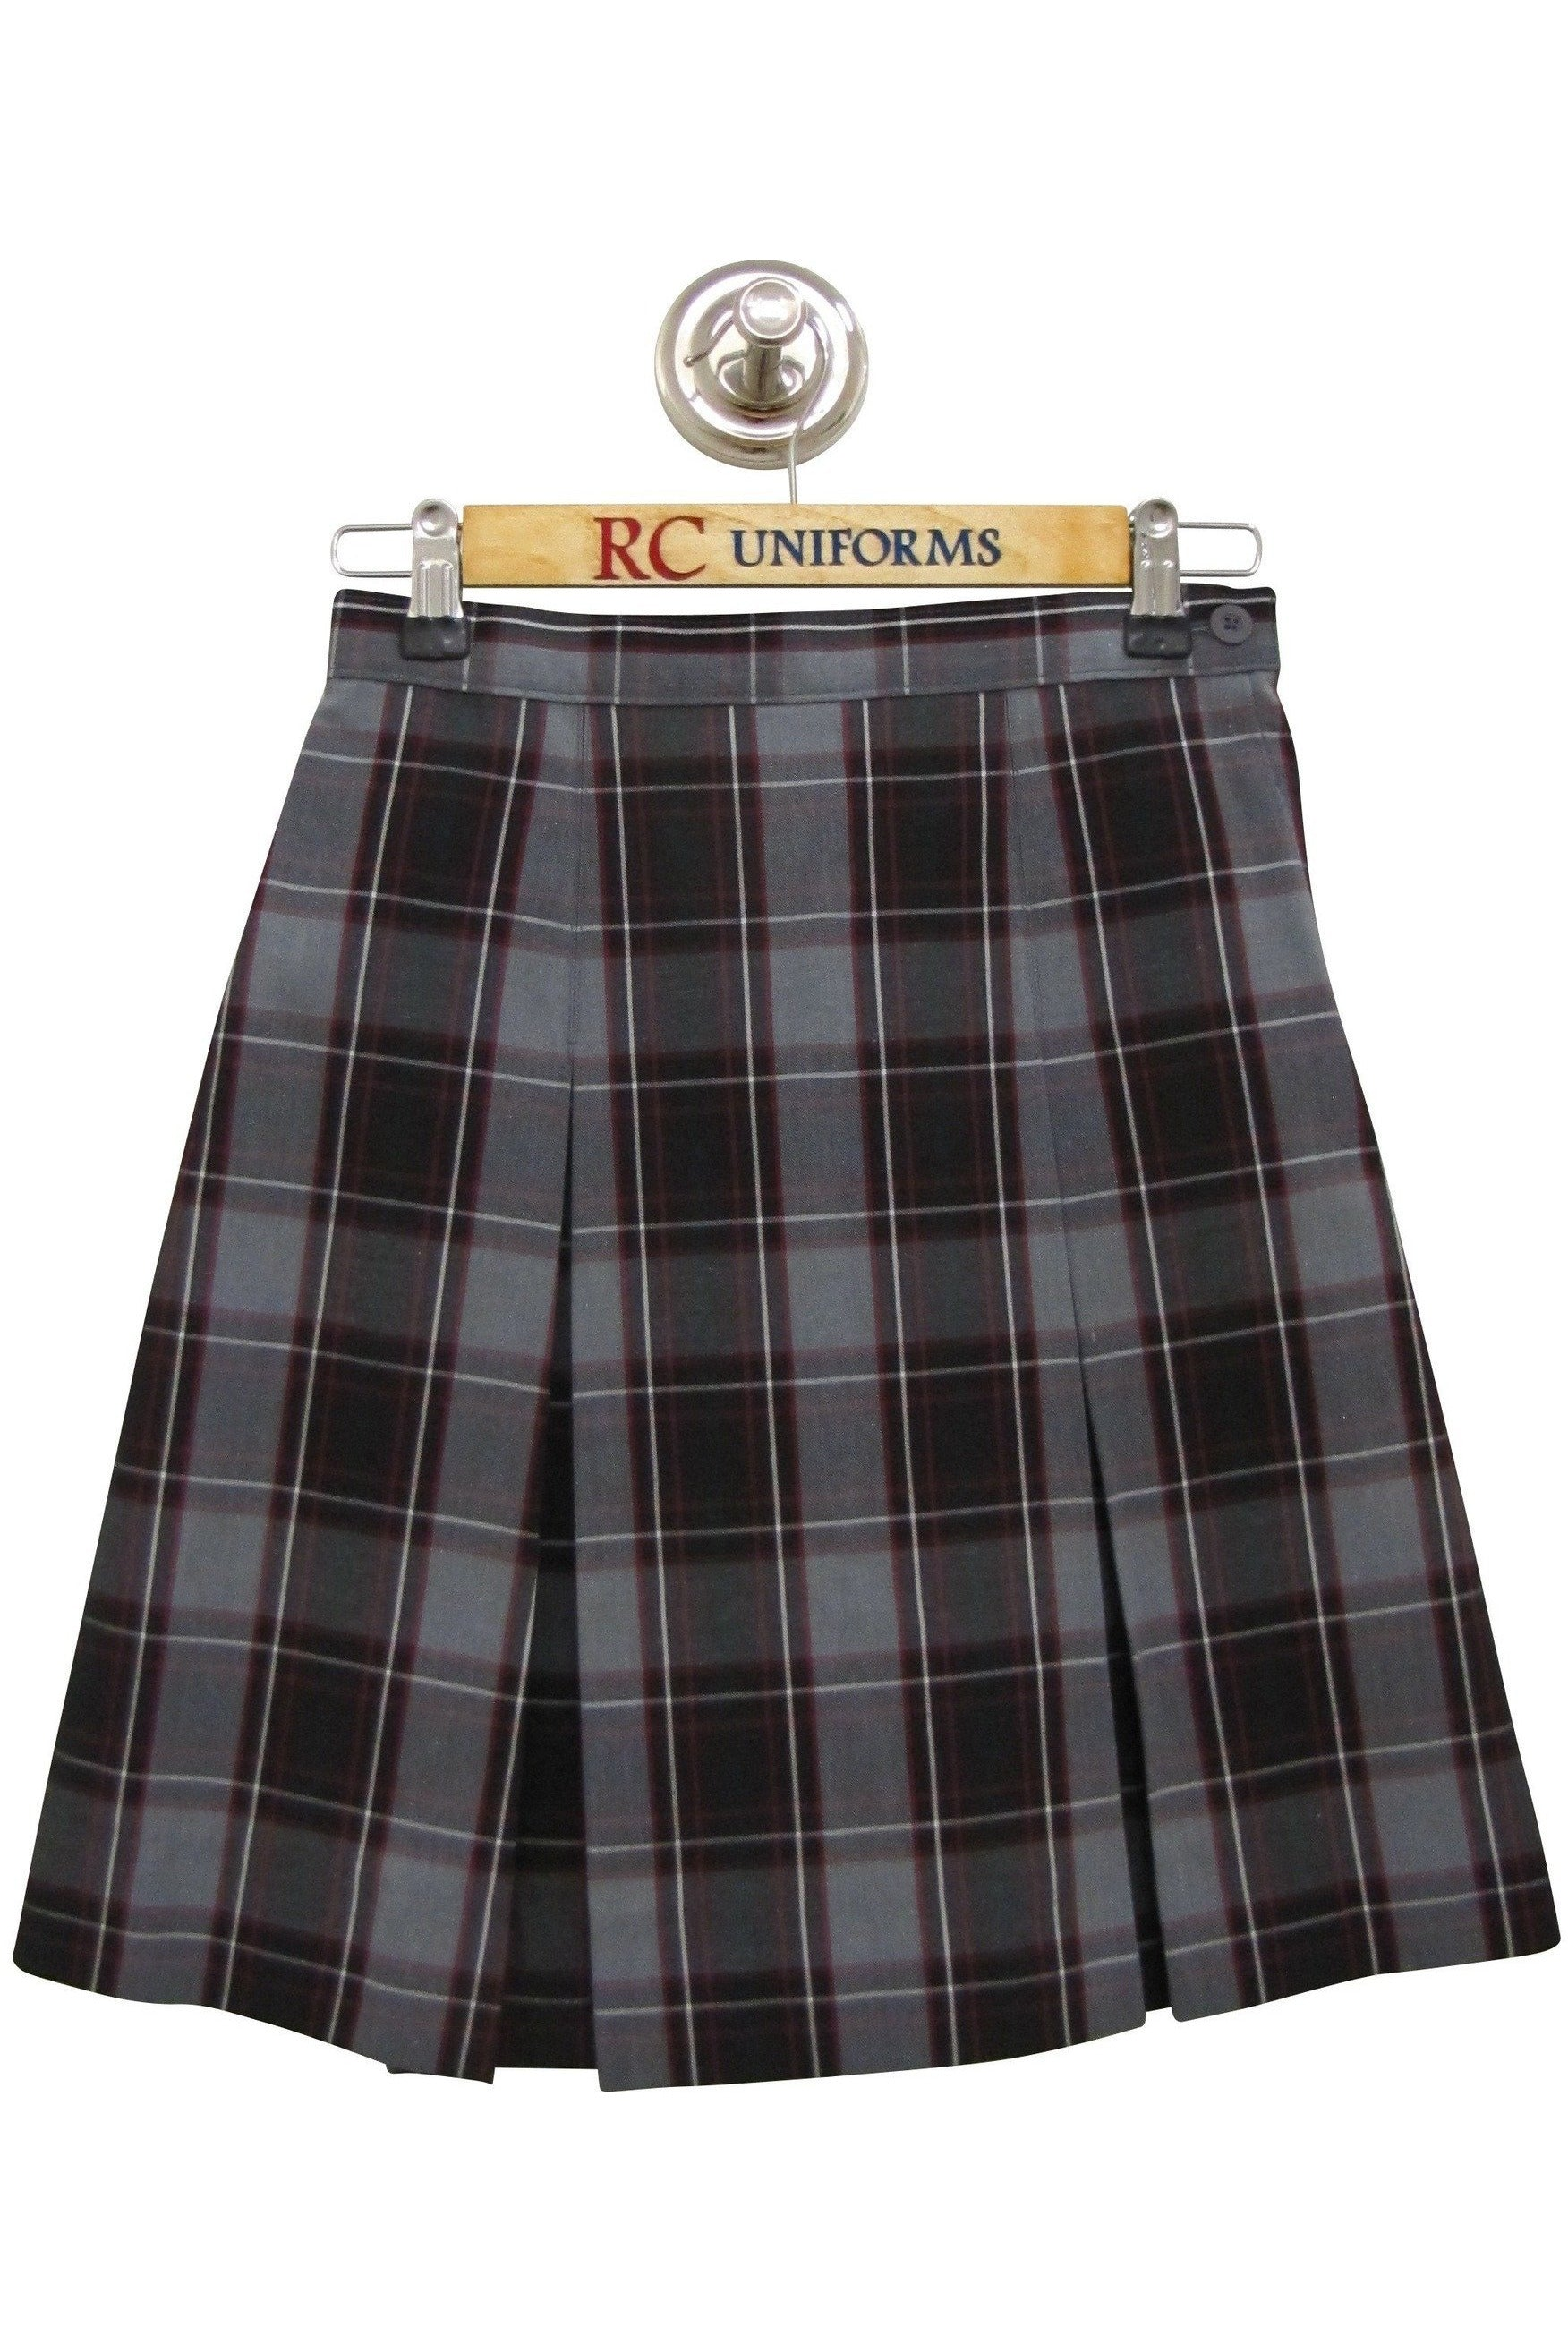 Plaid 52 Kick Pleat Skirt - RC Uniforms